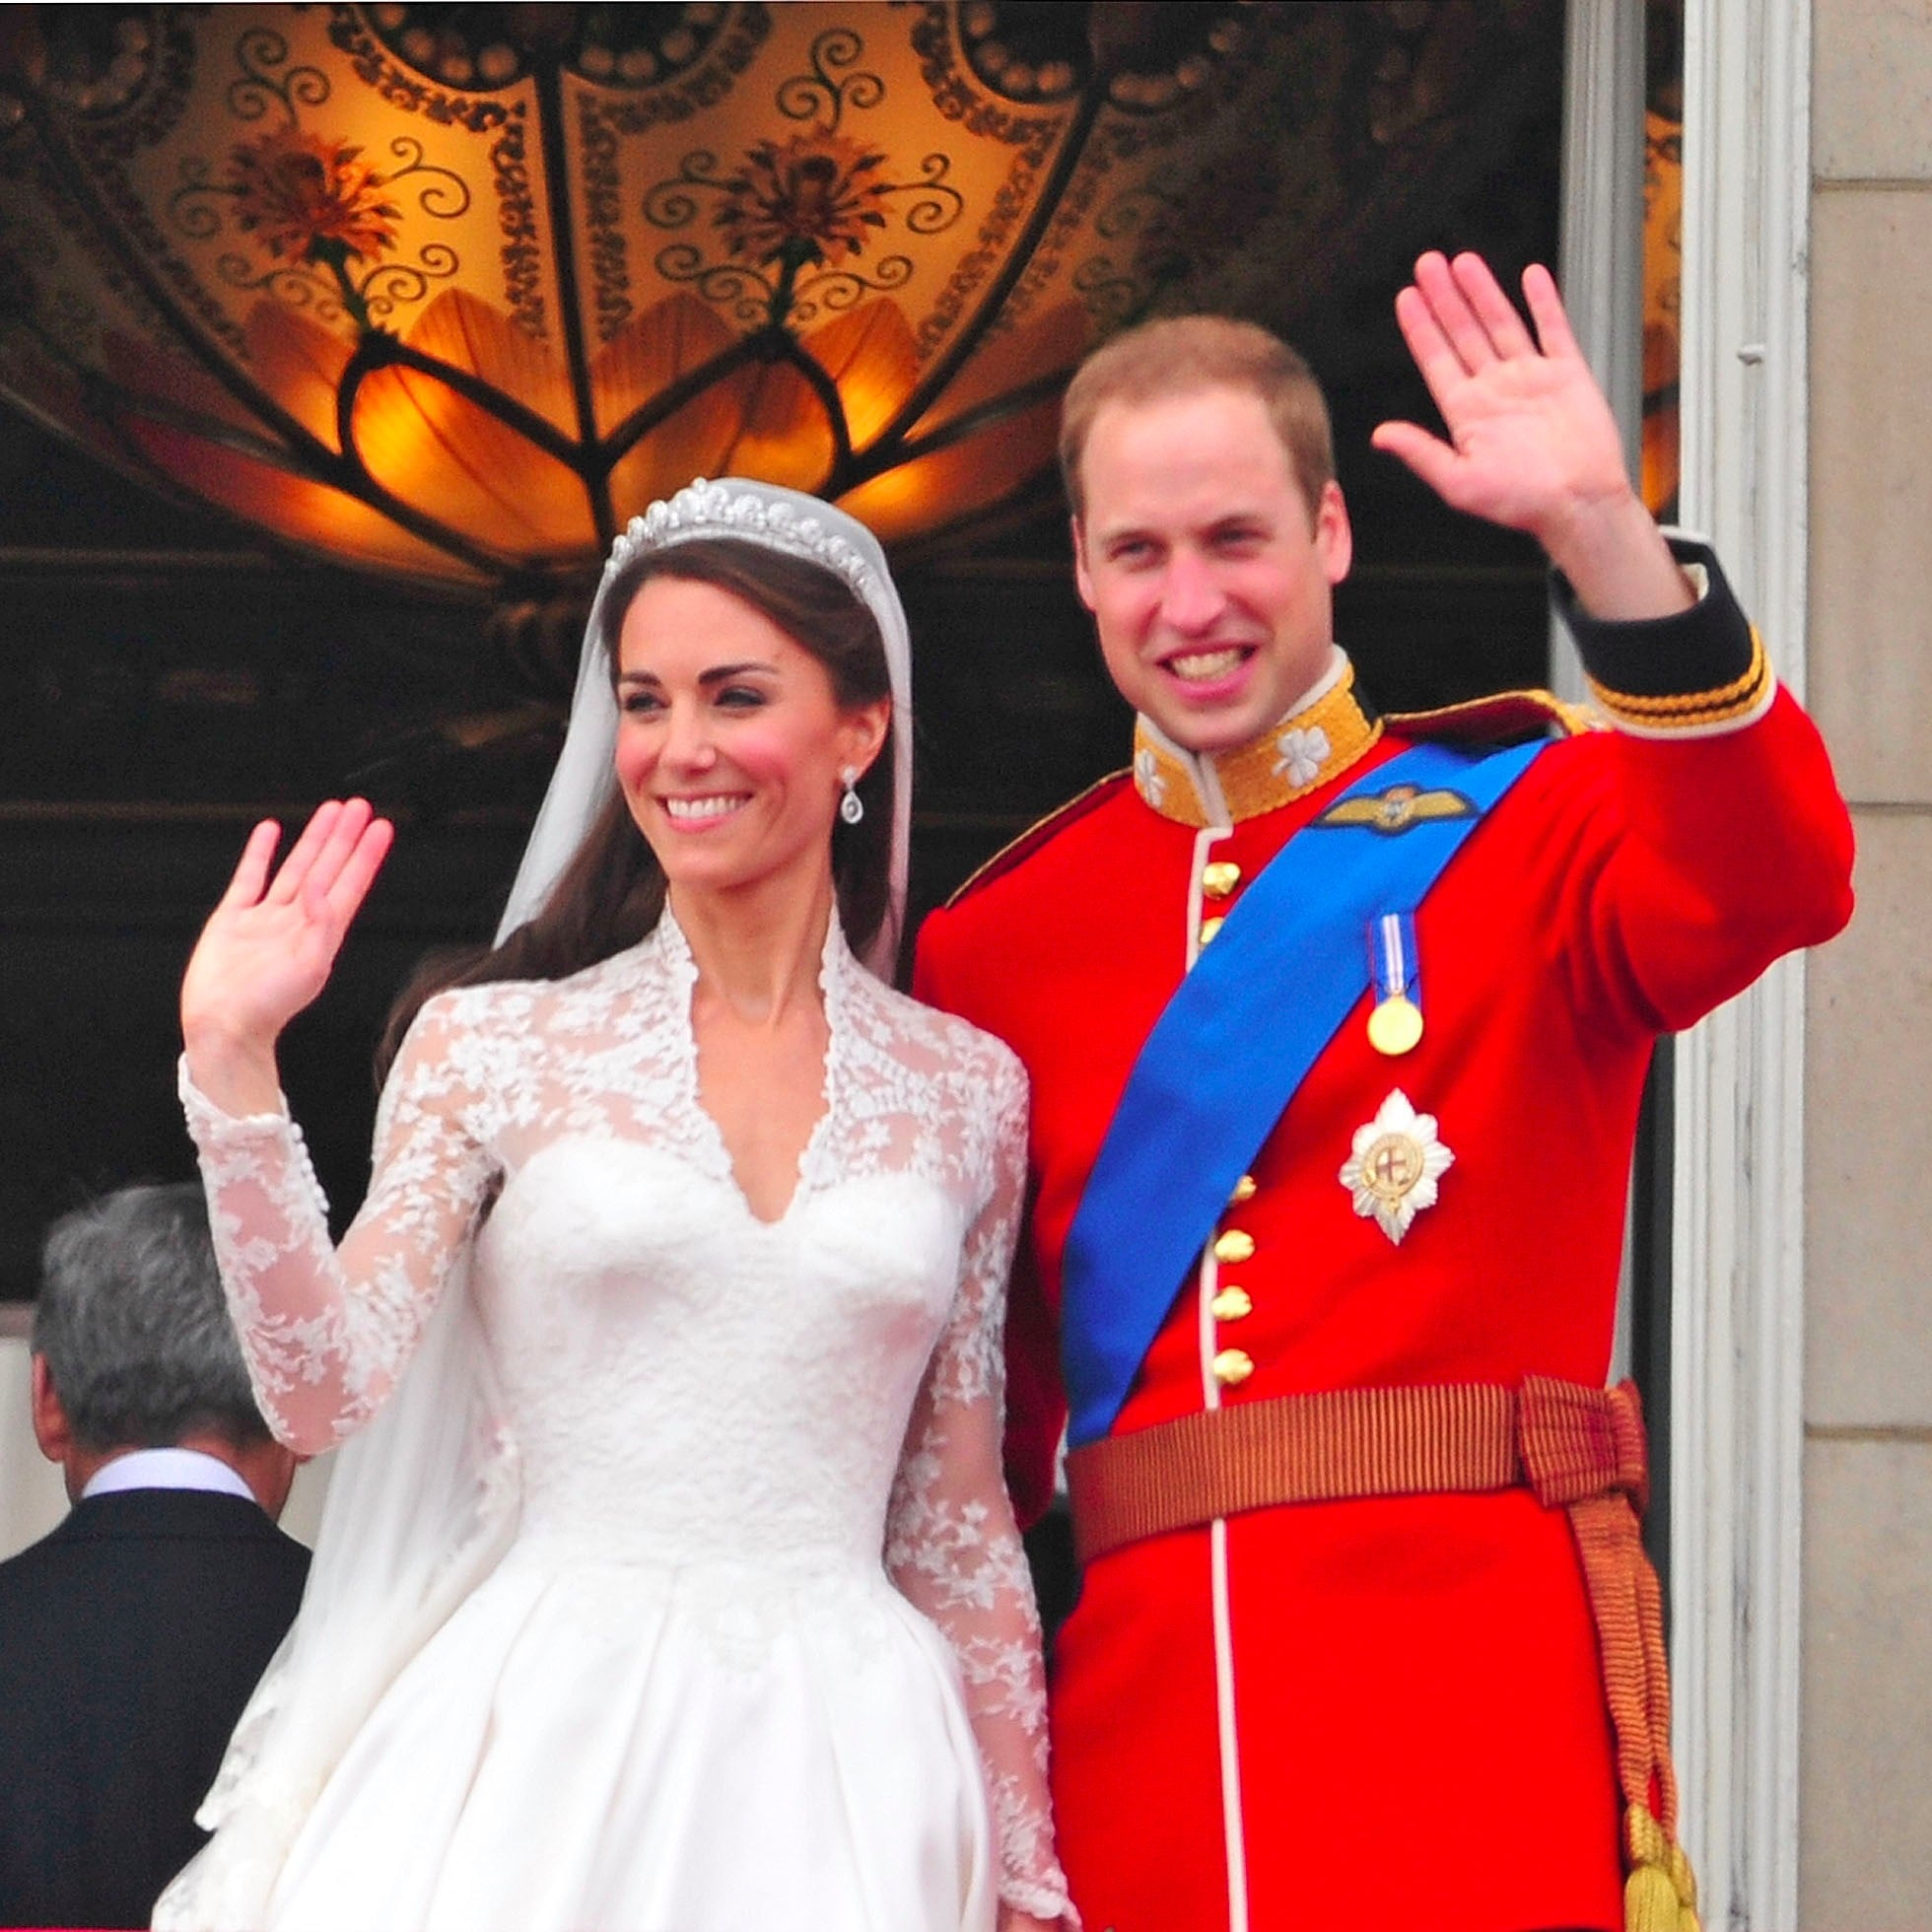 Prince William Kate Middleton Royal Wedding Video - Prince William Wedding Suit